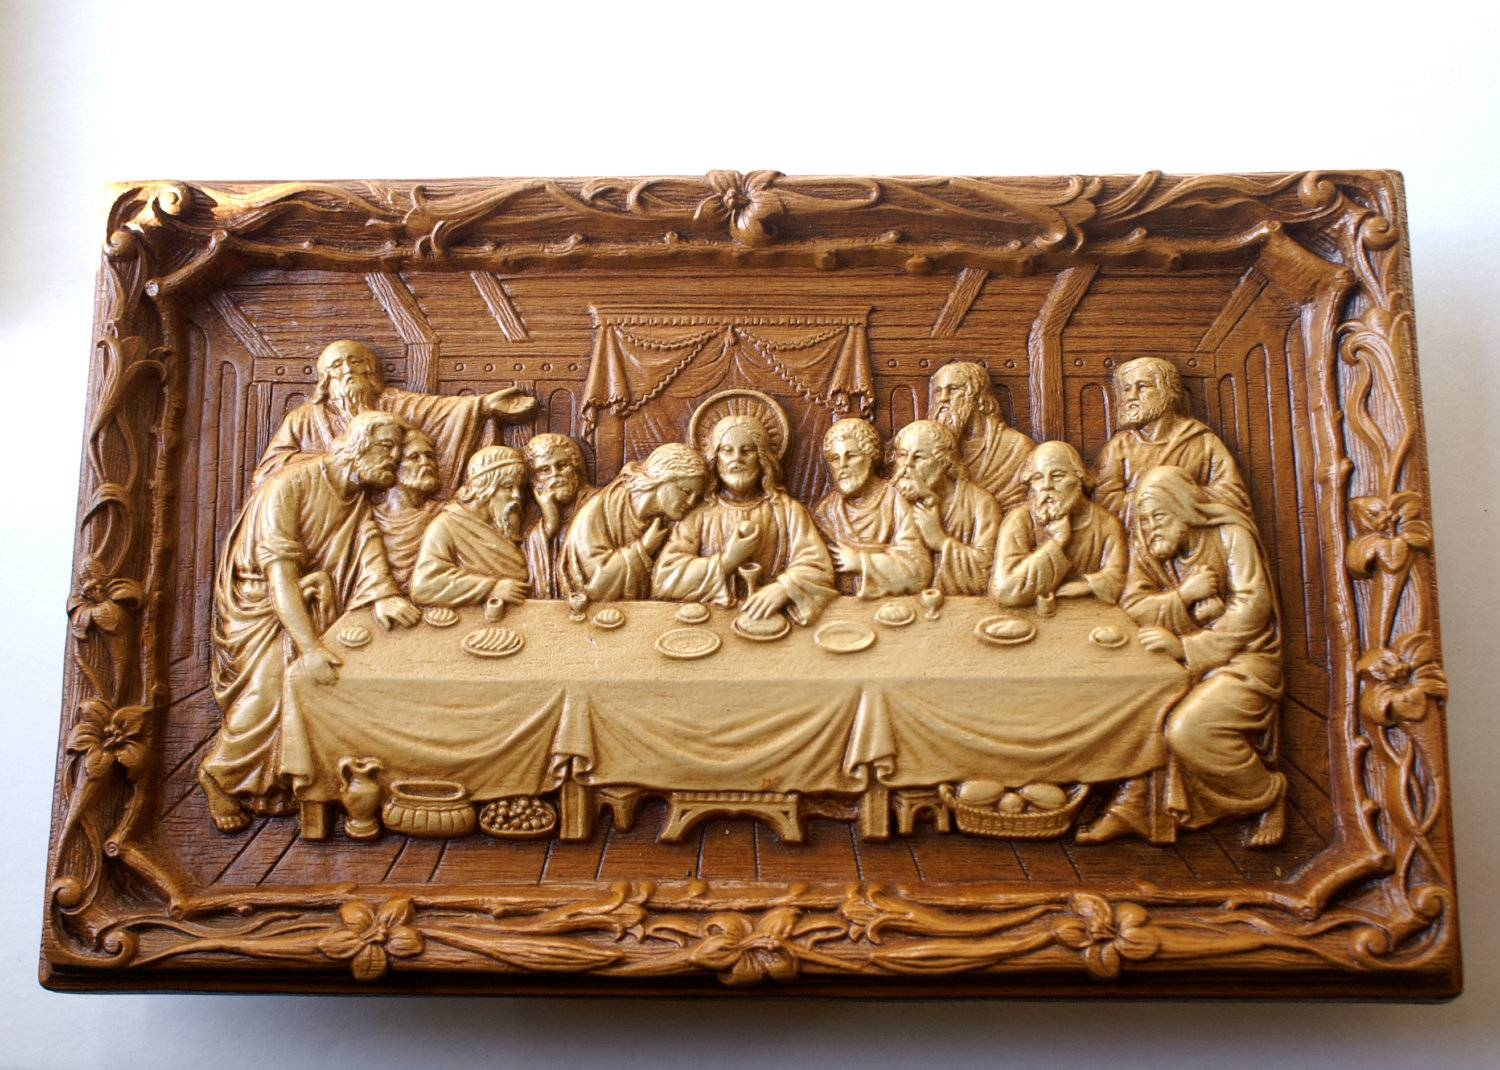 Wall Decor: Best Of Last Supper Wall Decor Last Supper 3d Wall Inside Most Current Last Supper Wall Art (View 13 of 20)